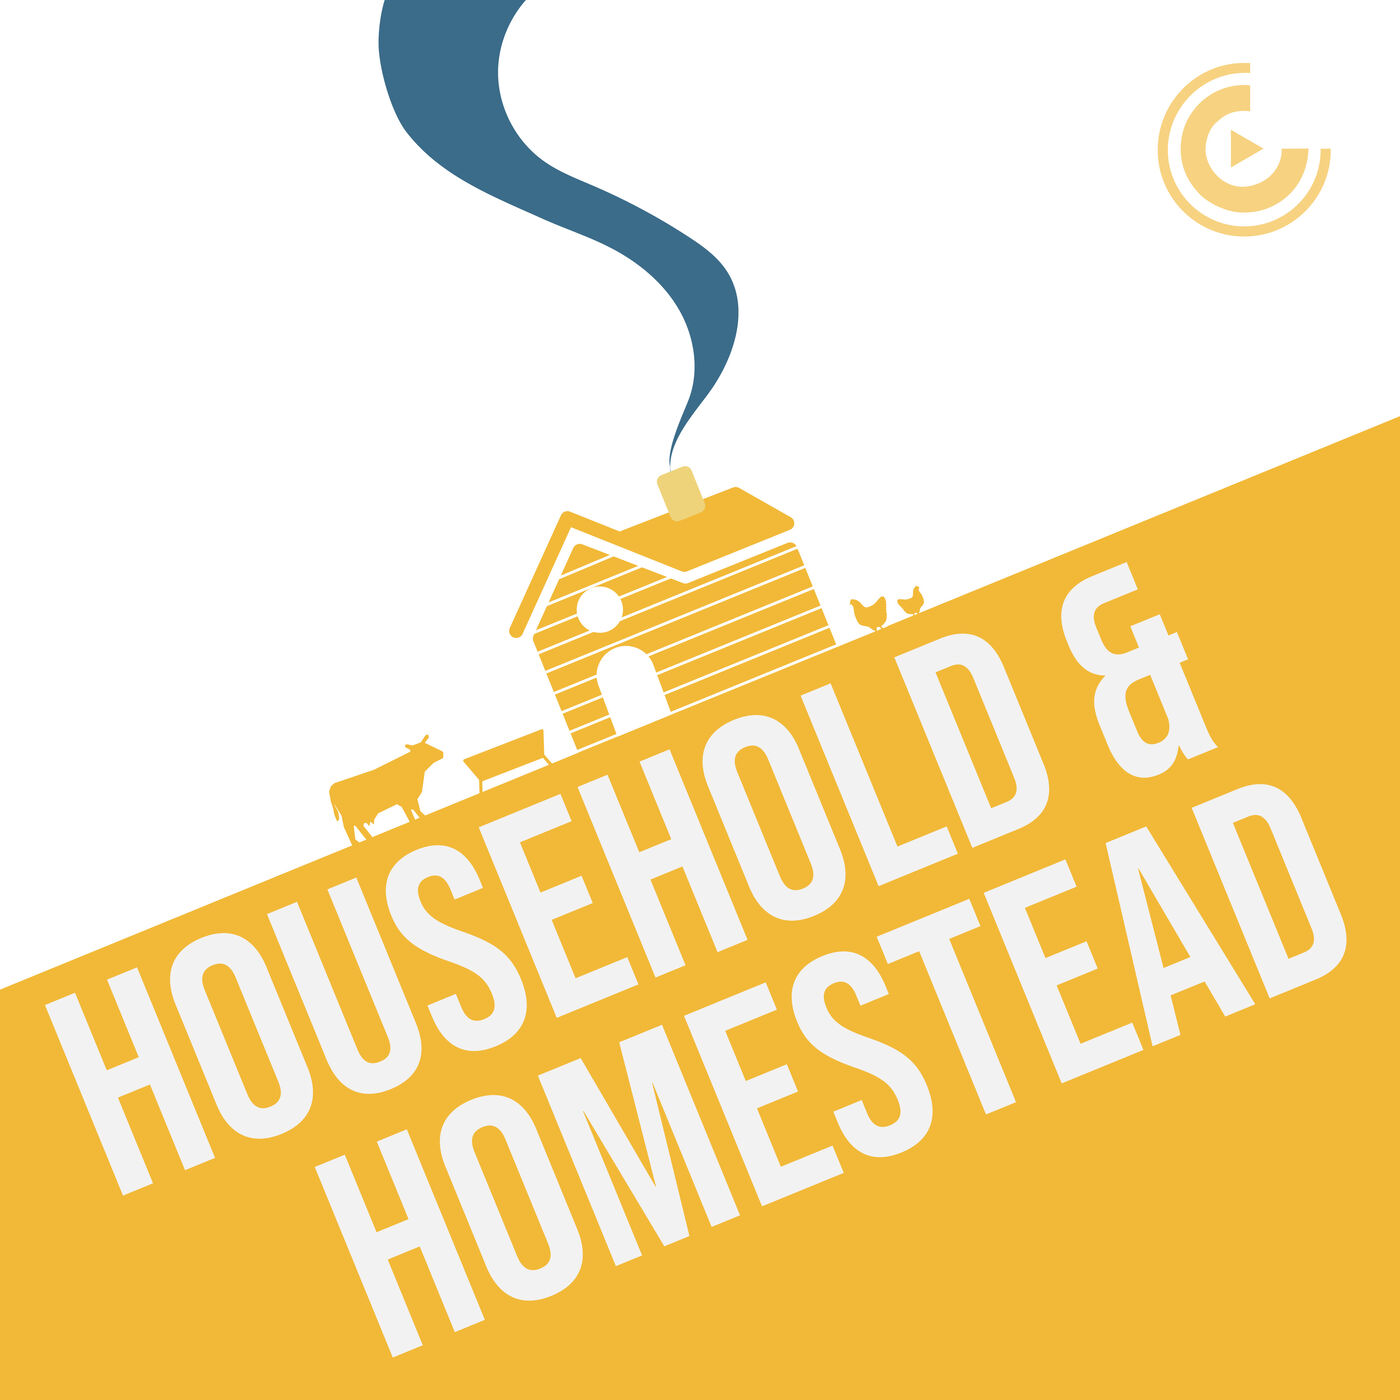 Household & Homestead | Episode #3: The Successful Household